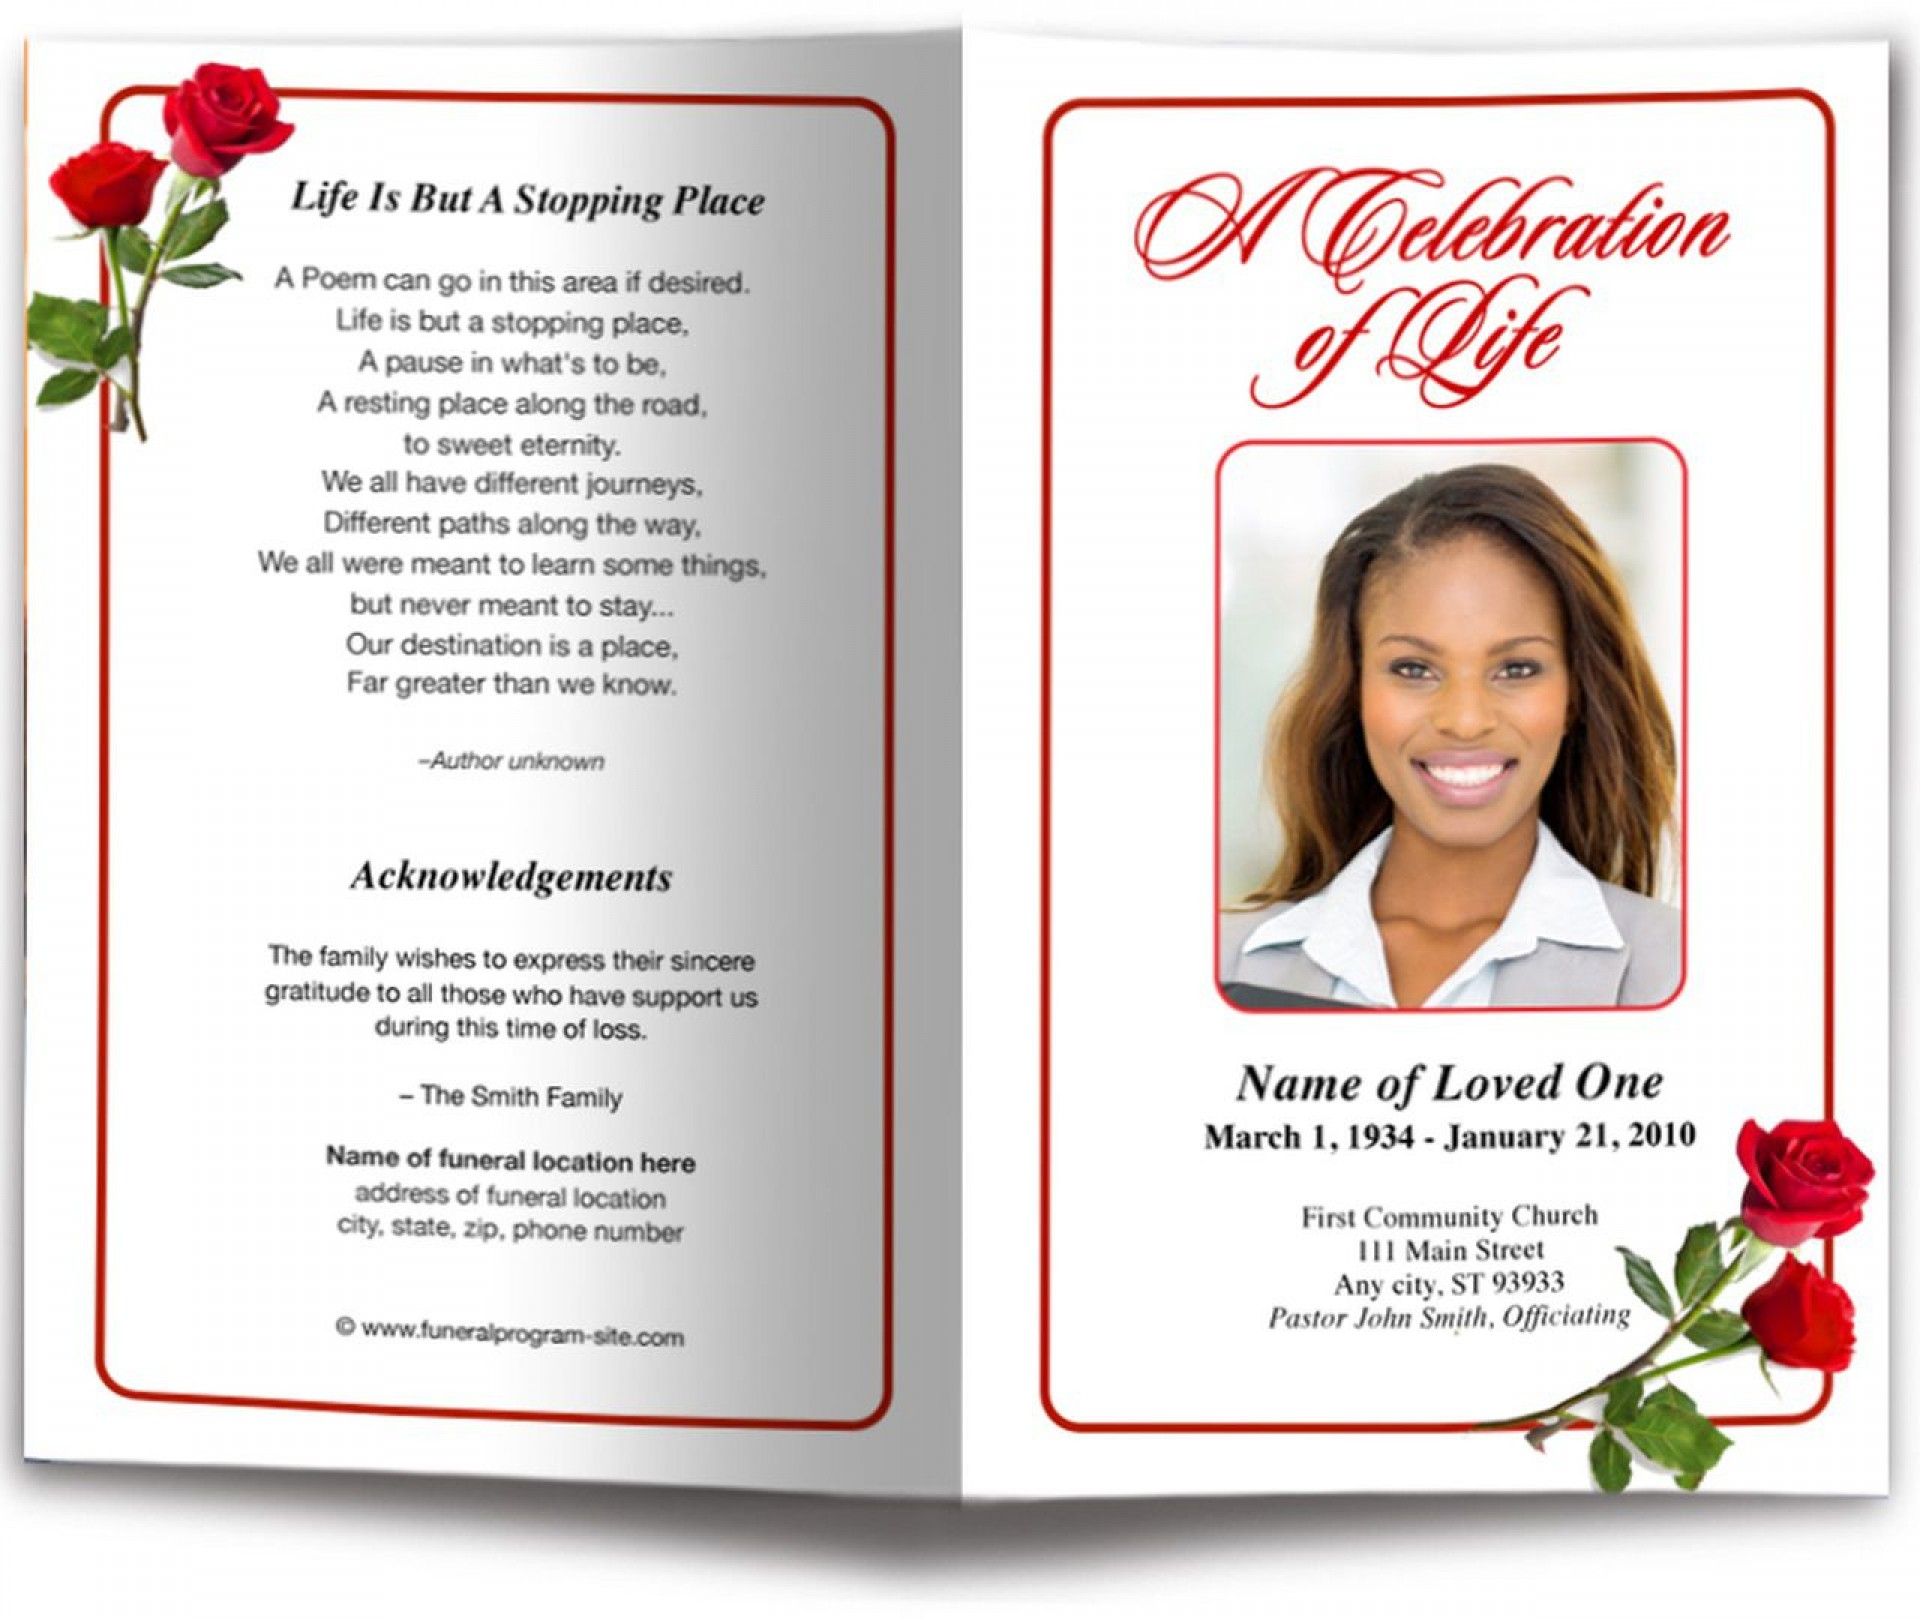 007 Wonderful Free Funeral Program Template Download Picture  Simple Editable Microsoft Word1920